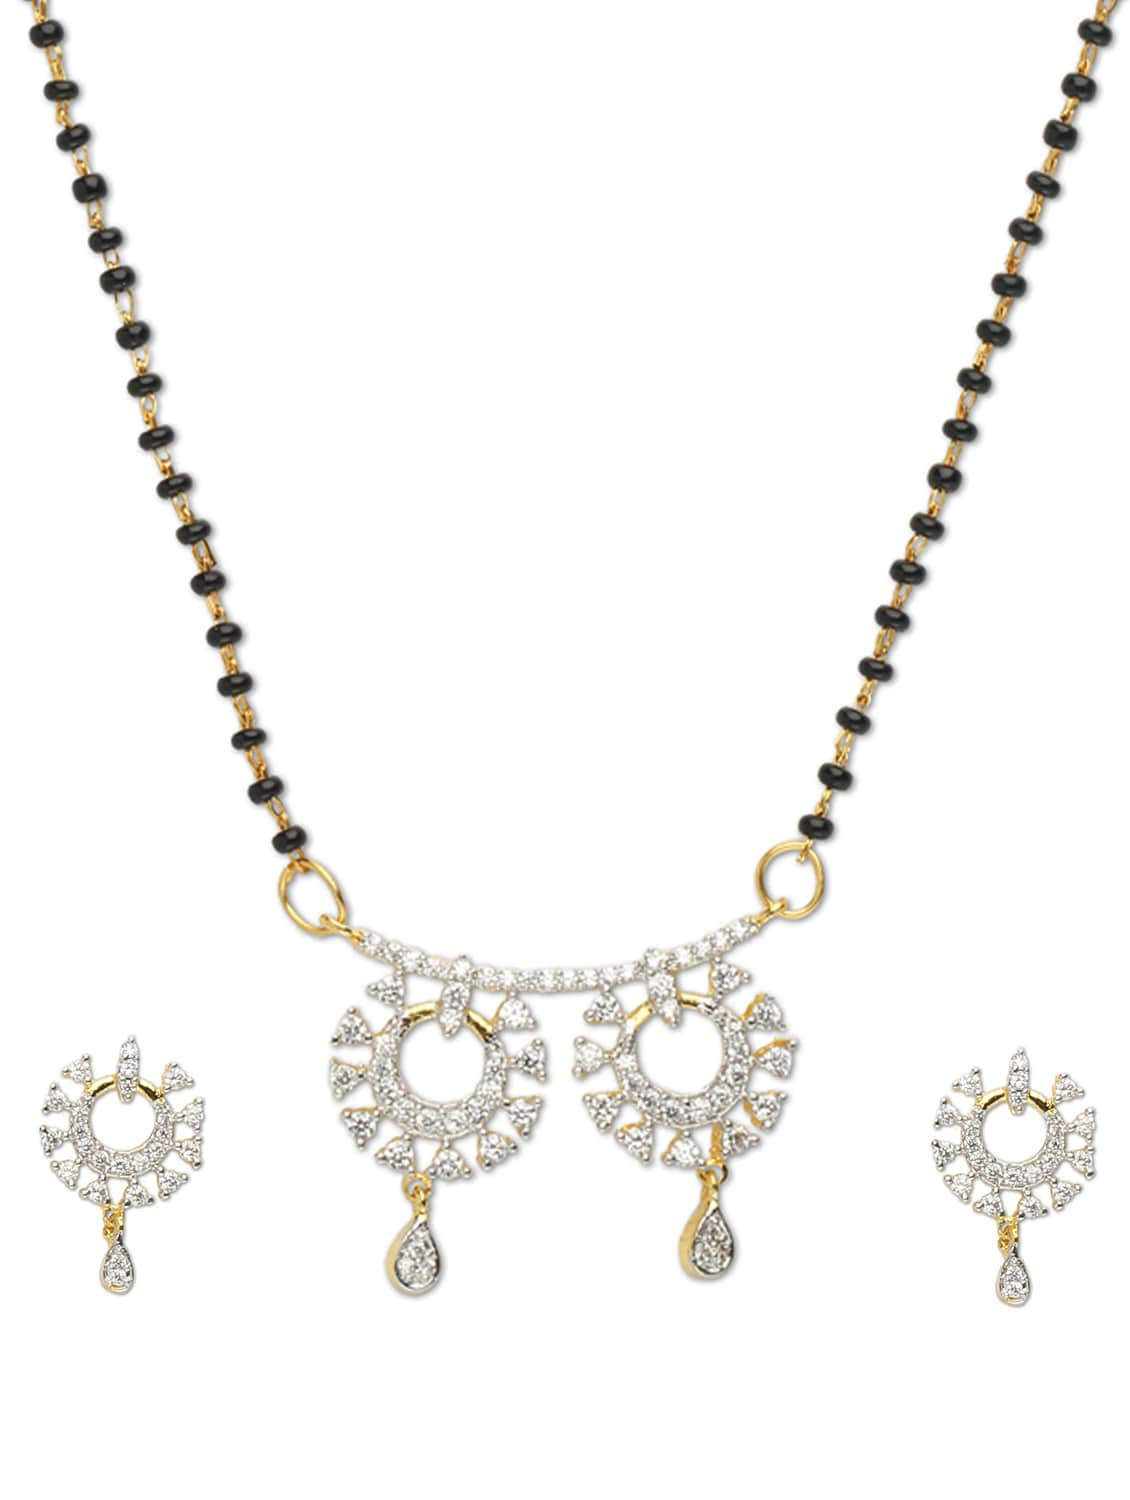 15 mangalsutra pendant designs in gold and